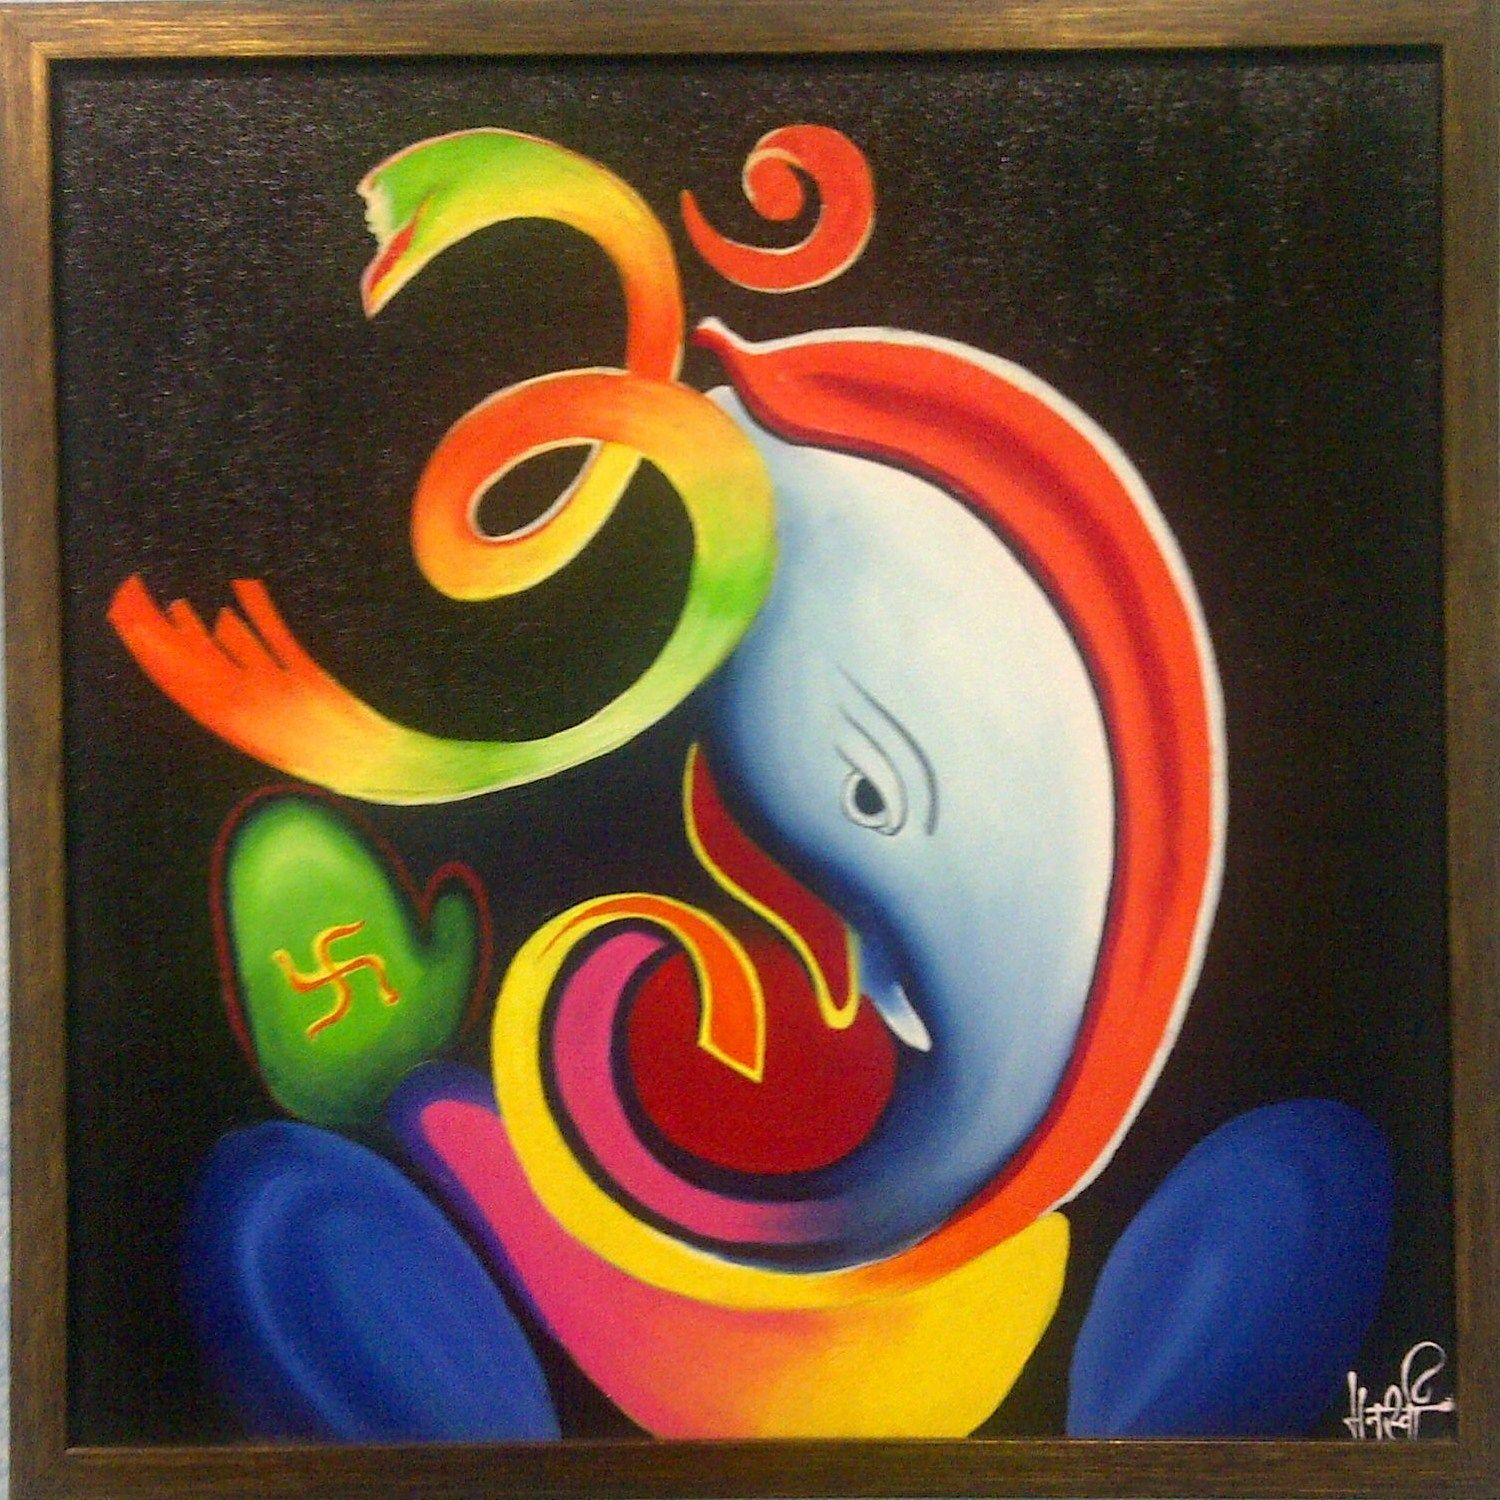 Ganesha Abstract Art with Om and Buddhist symbol   Ganesha painting, Lord  ganesha paintings, Ganesha art